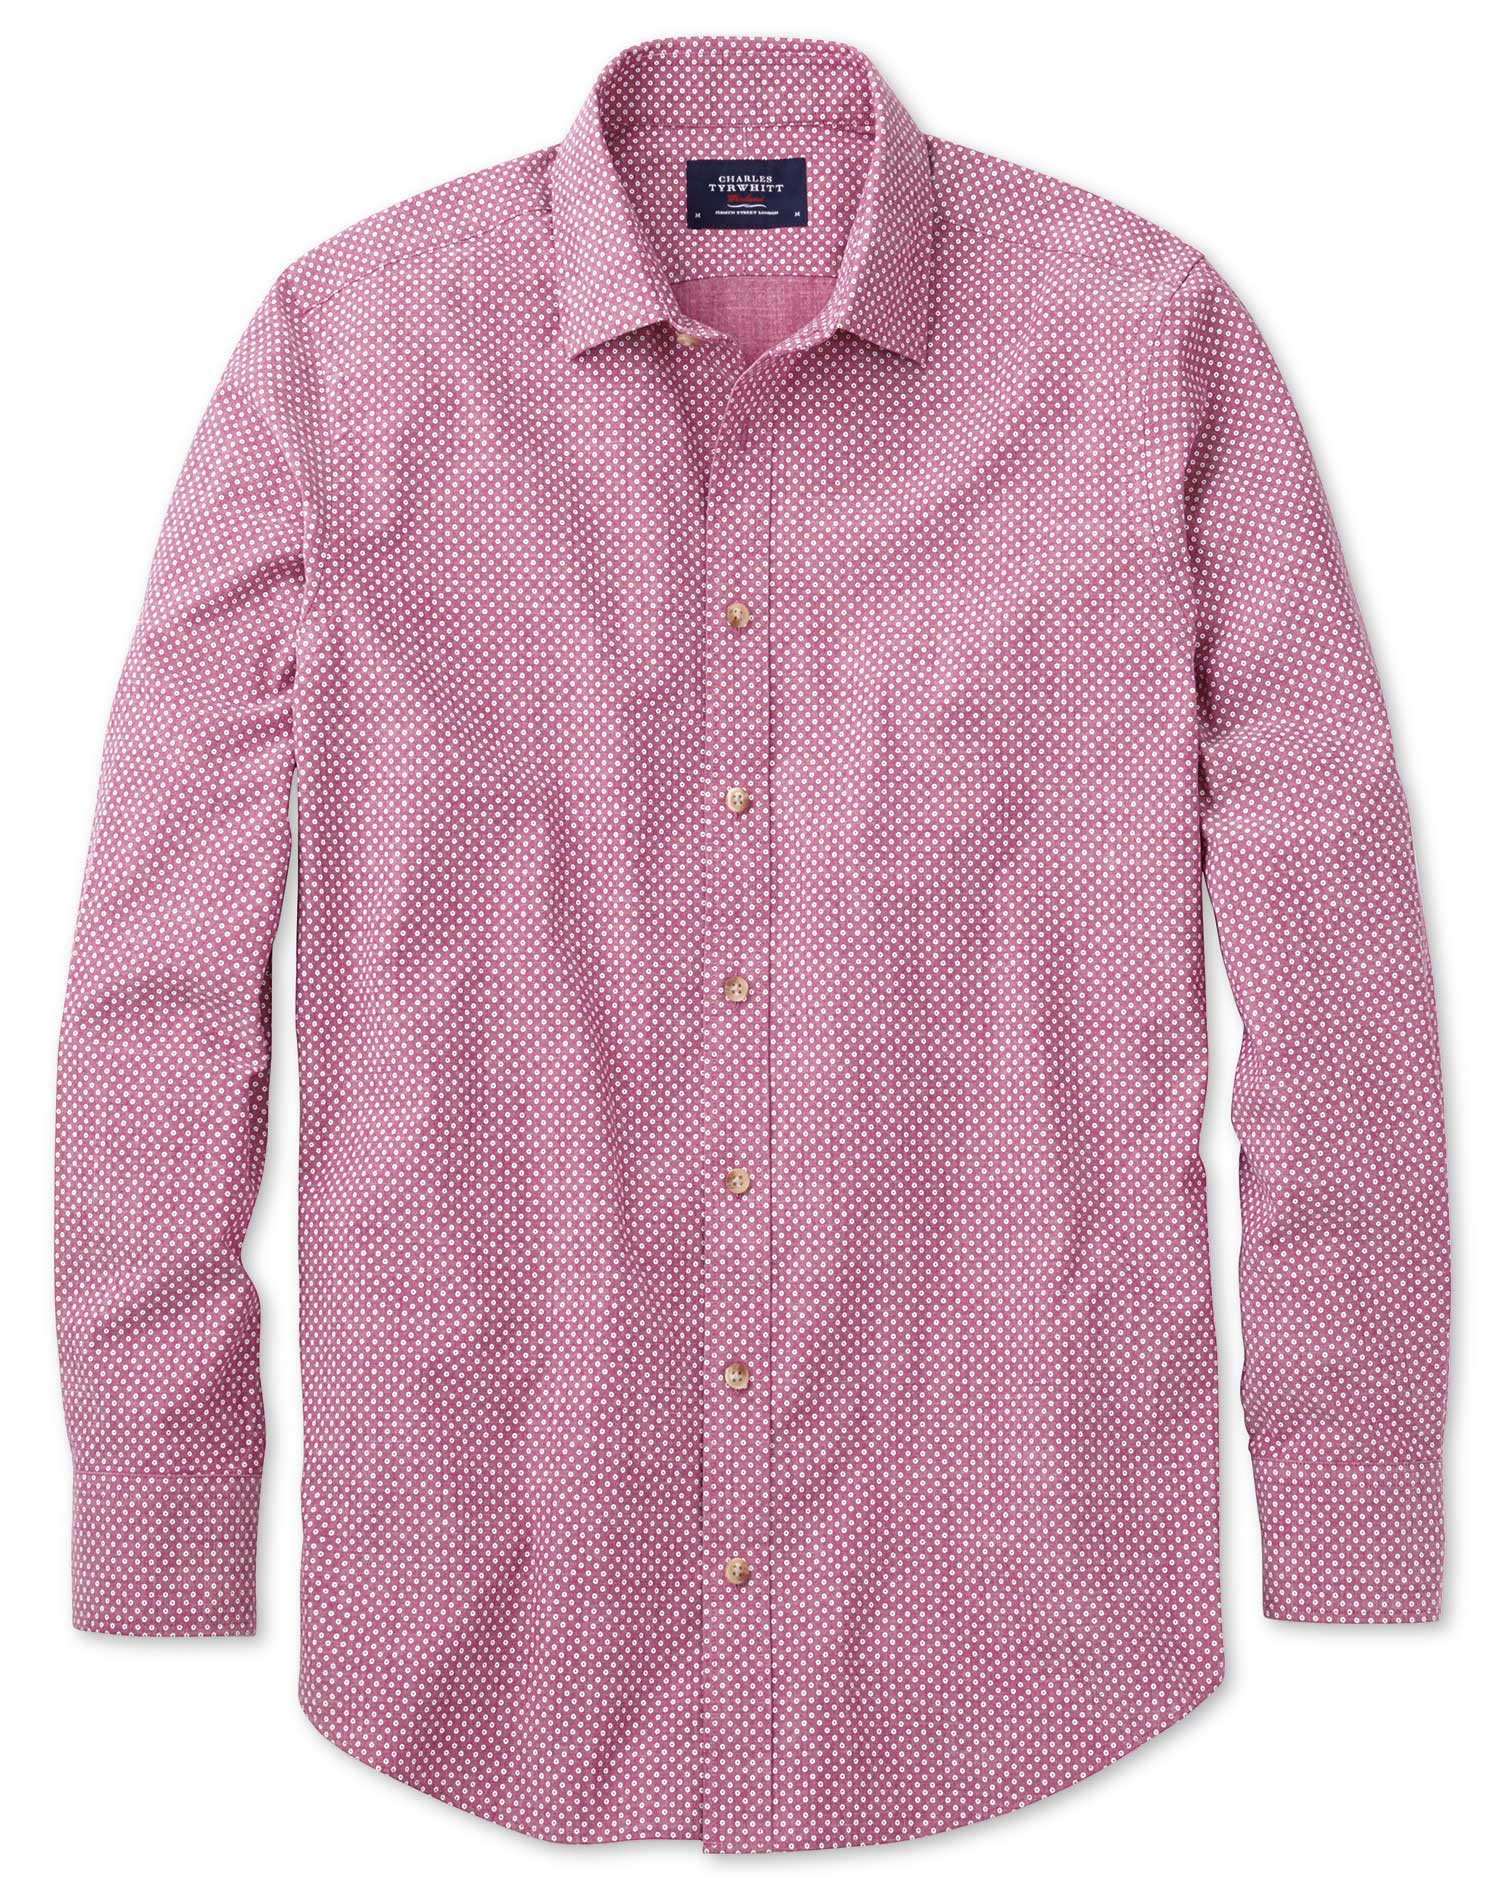 Slim Fit Berry Red and White Spot Print Cotton Shirt Single Cuff Size Medium by Charles Tyrwhitt